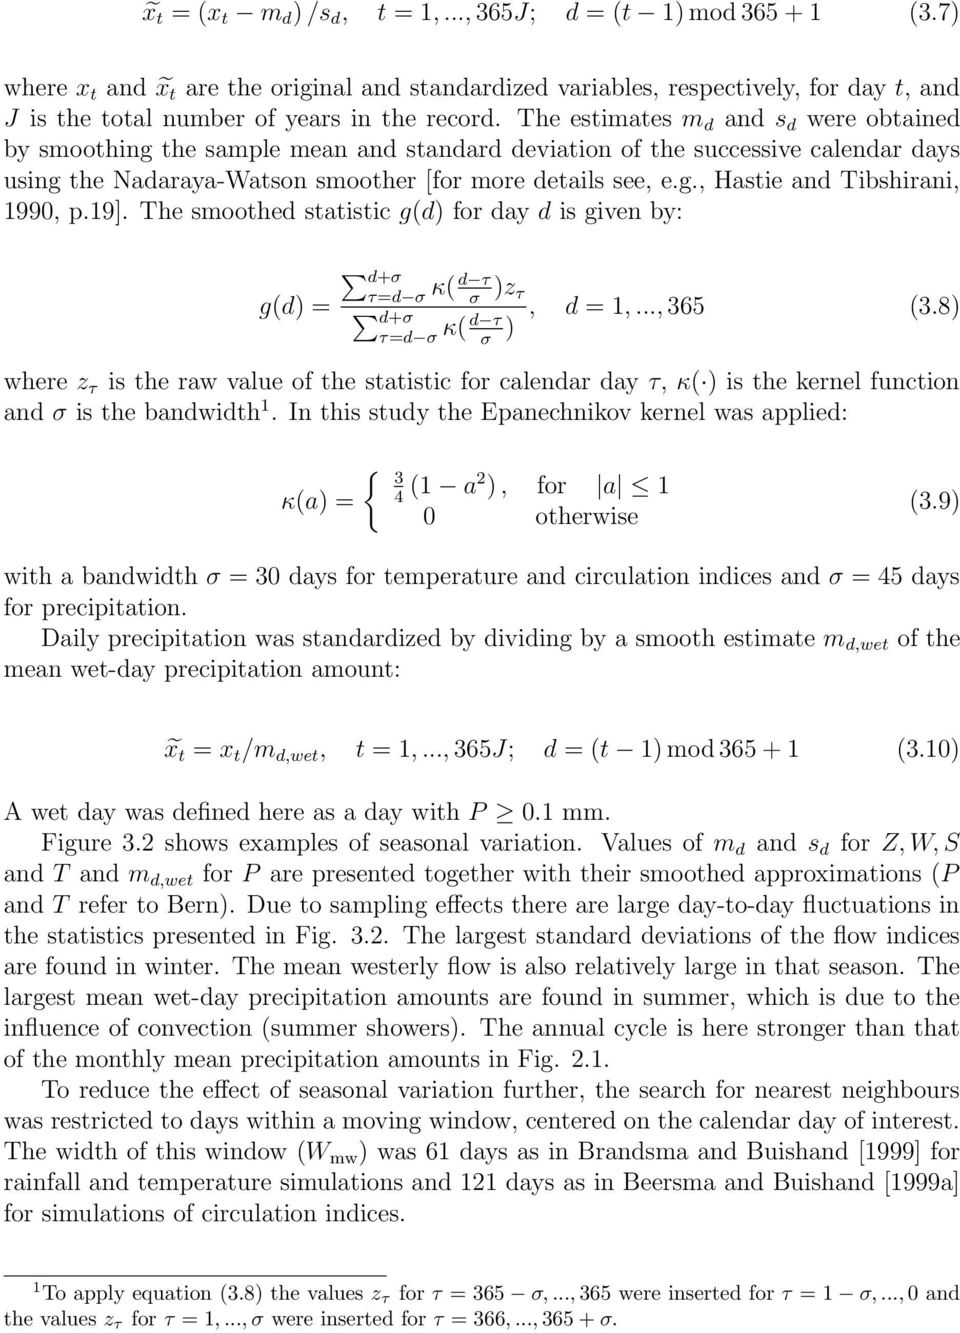 The estimates m d and s d were obtained by smoothing the sample mean and standard deviation of the successive calendar days using the Nadaraya-Watson smoother [for more details see, e.g., Hastie and Tibshirani, 199, p.